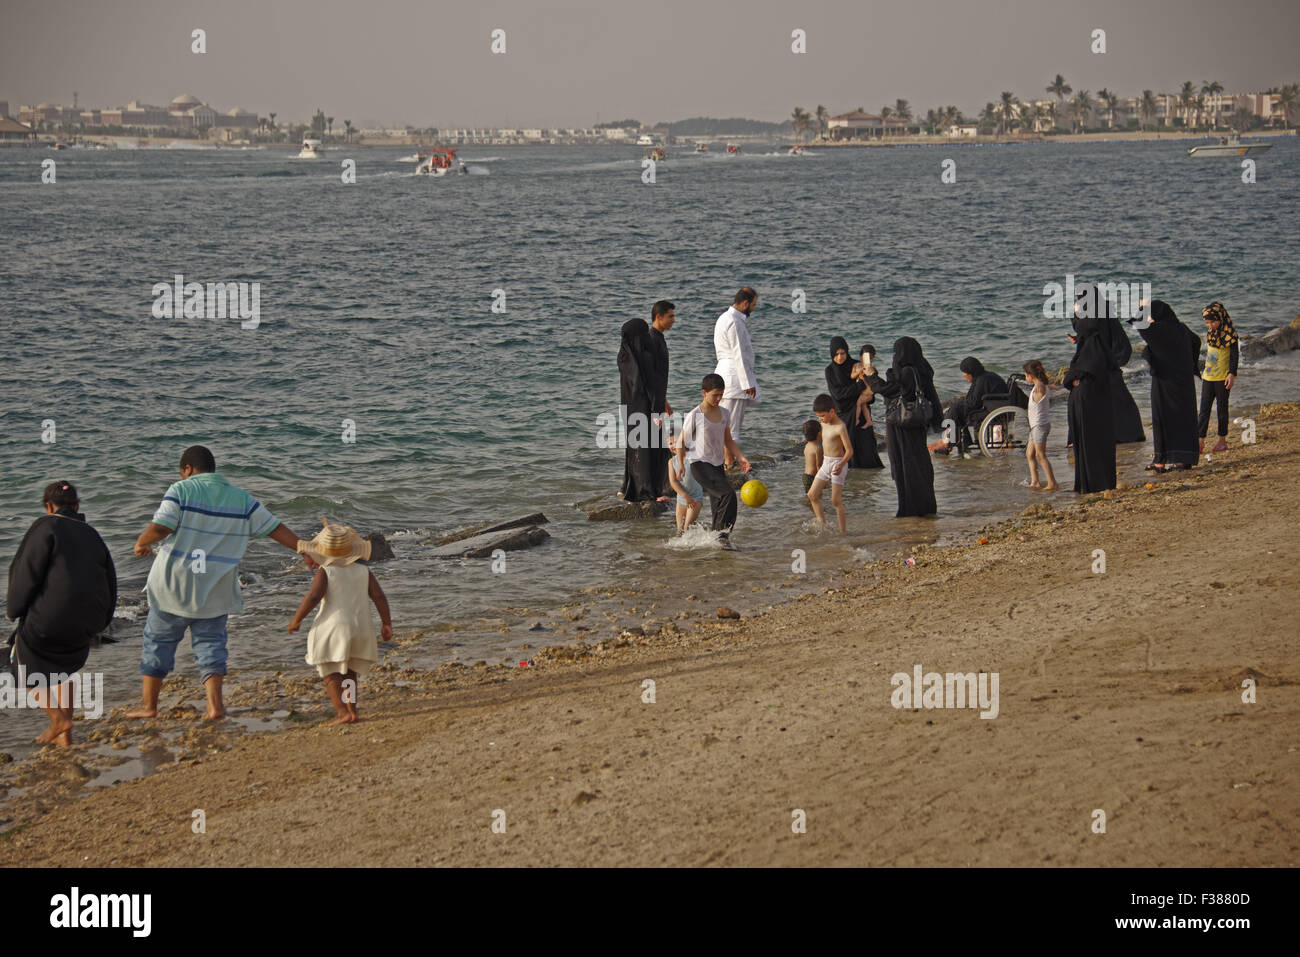 A typical scene at the Corniche in Jeddah, Saudi Arabia. Families stroll the beach of the Red Sea, pray and watch - Stock Image